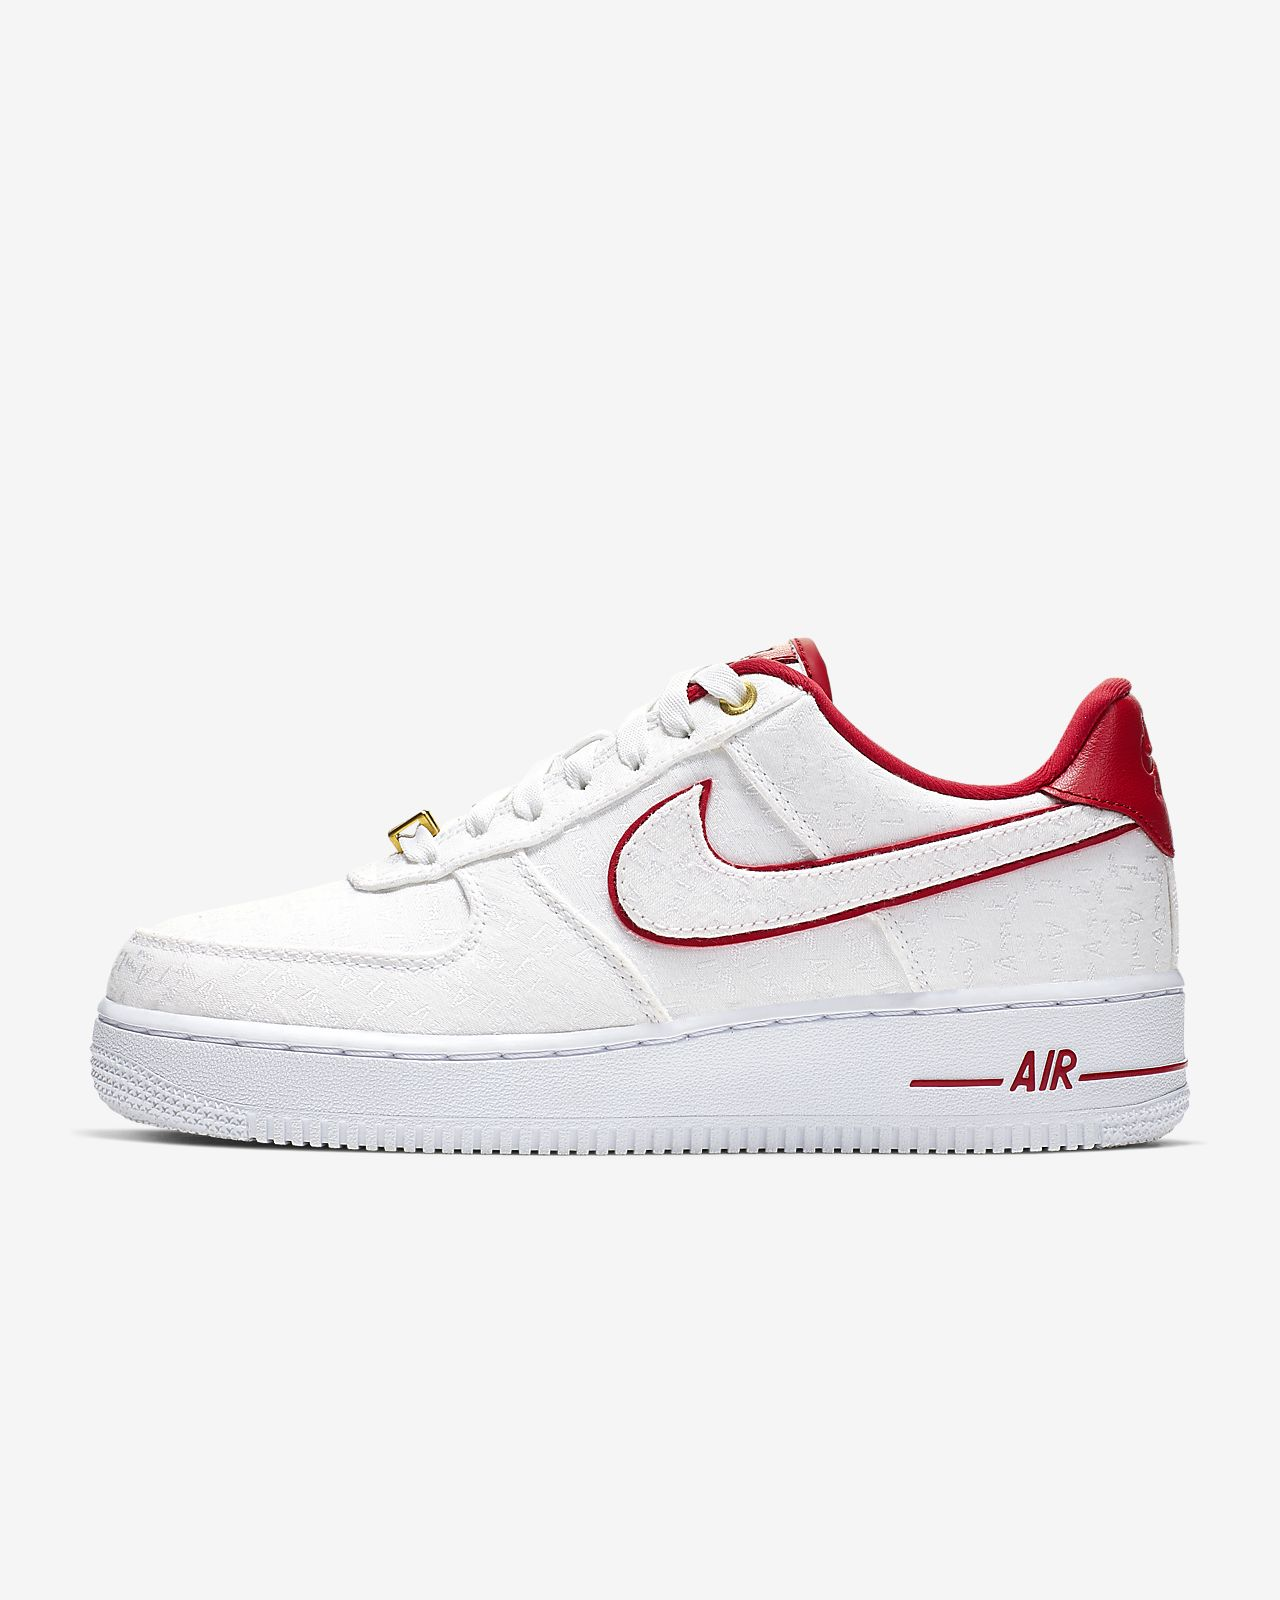 new style 594fe 0e415 ... Chaussure Nike Air Force 1  07 Lux pour Femme